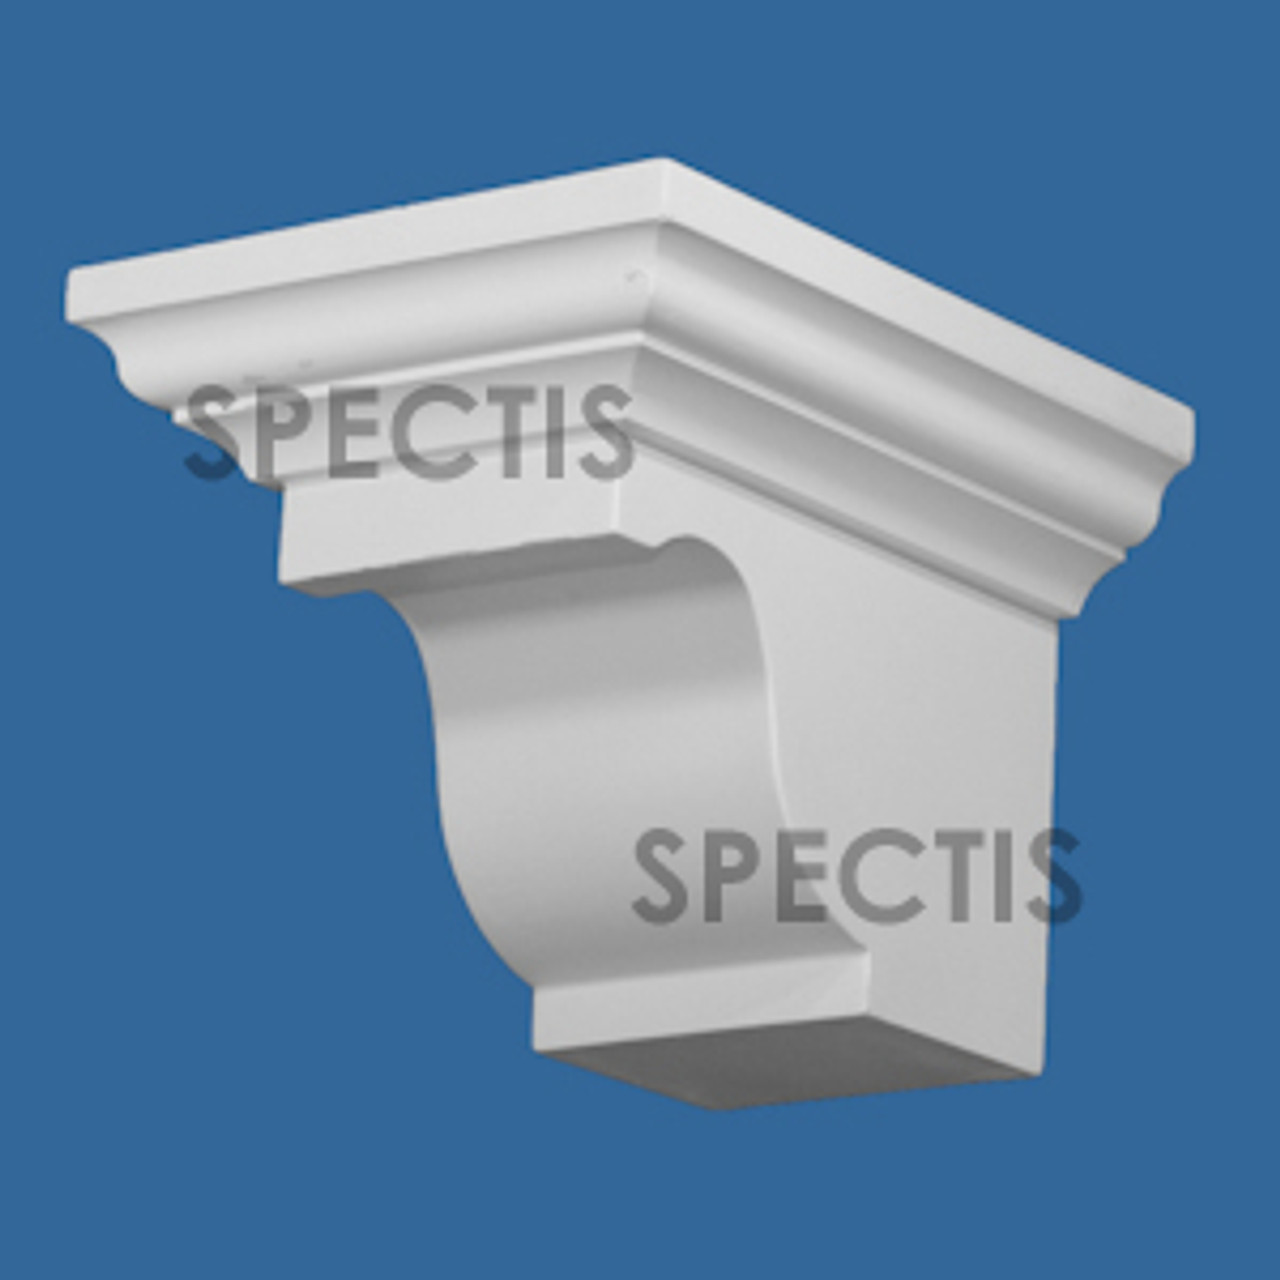 """BL2999 Spectis Eave Block or Bracket 7""""W x 6.5""""H x 8.75"""" Projection"""